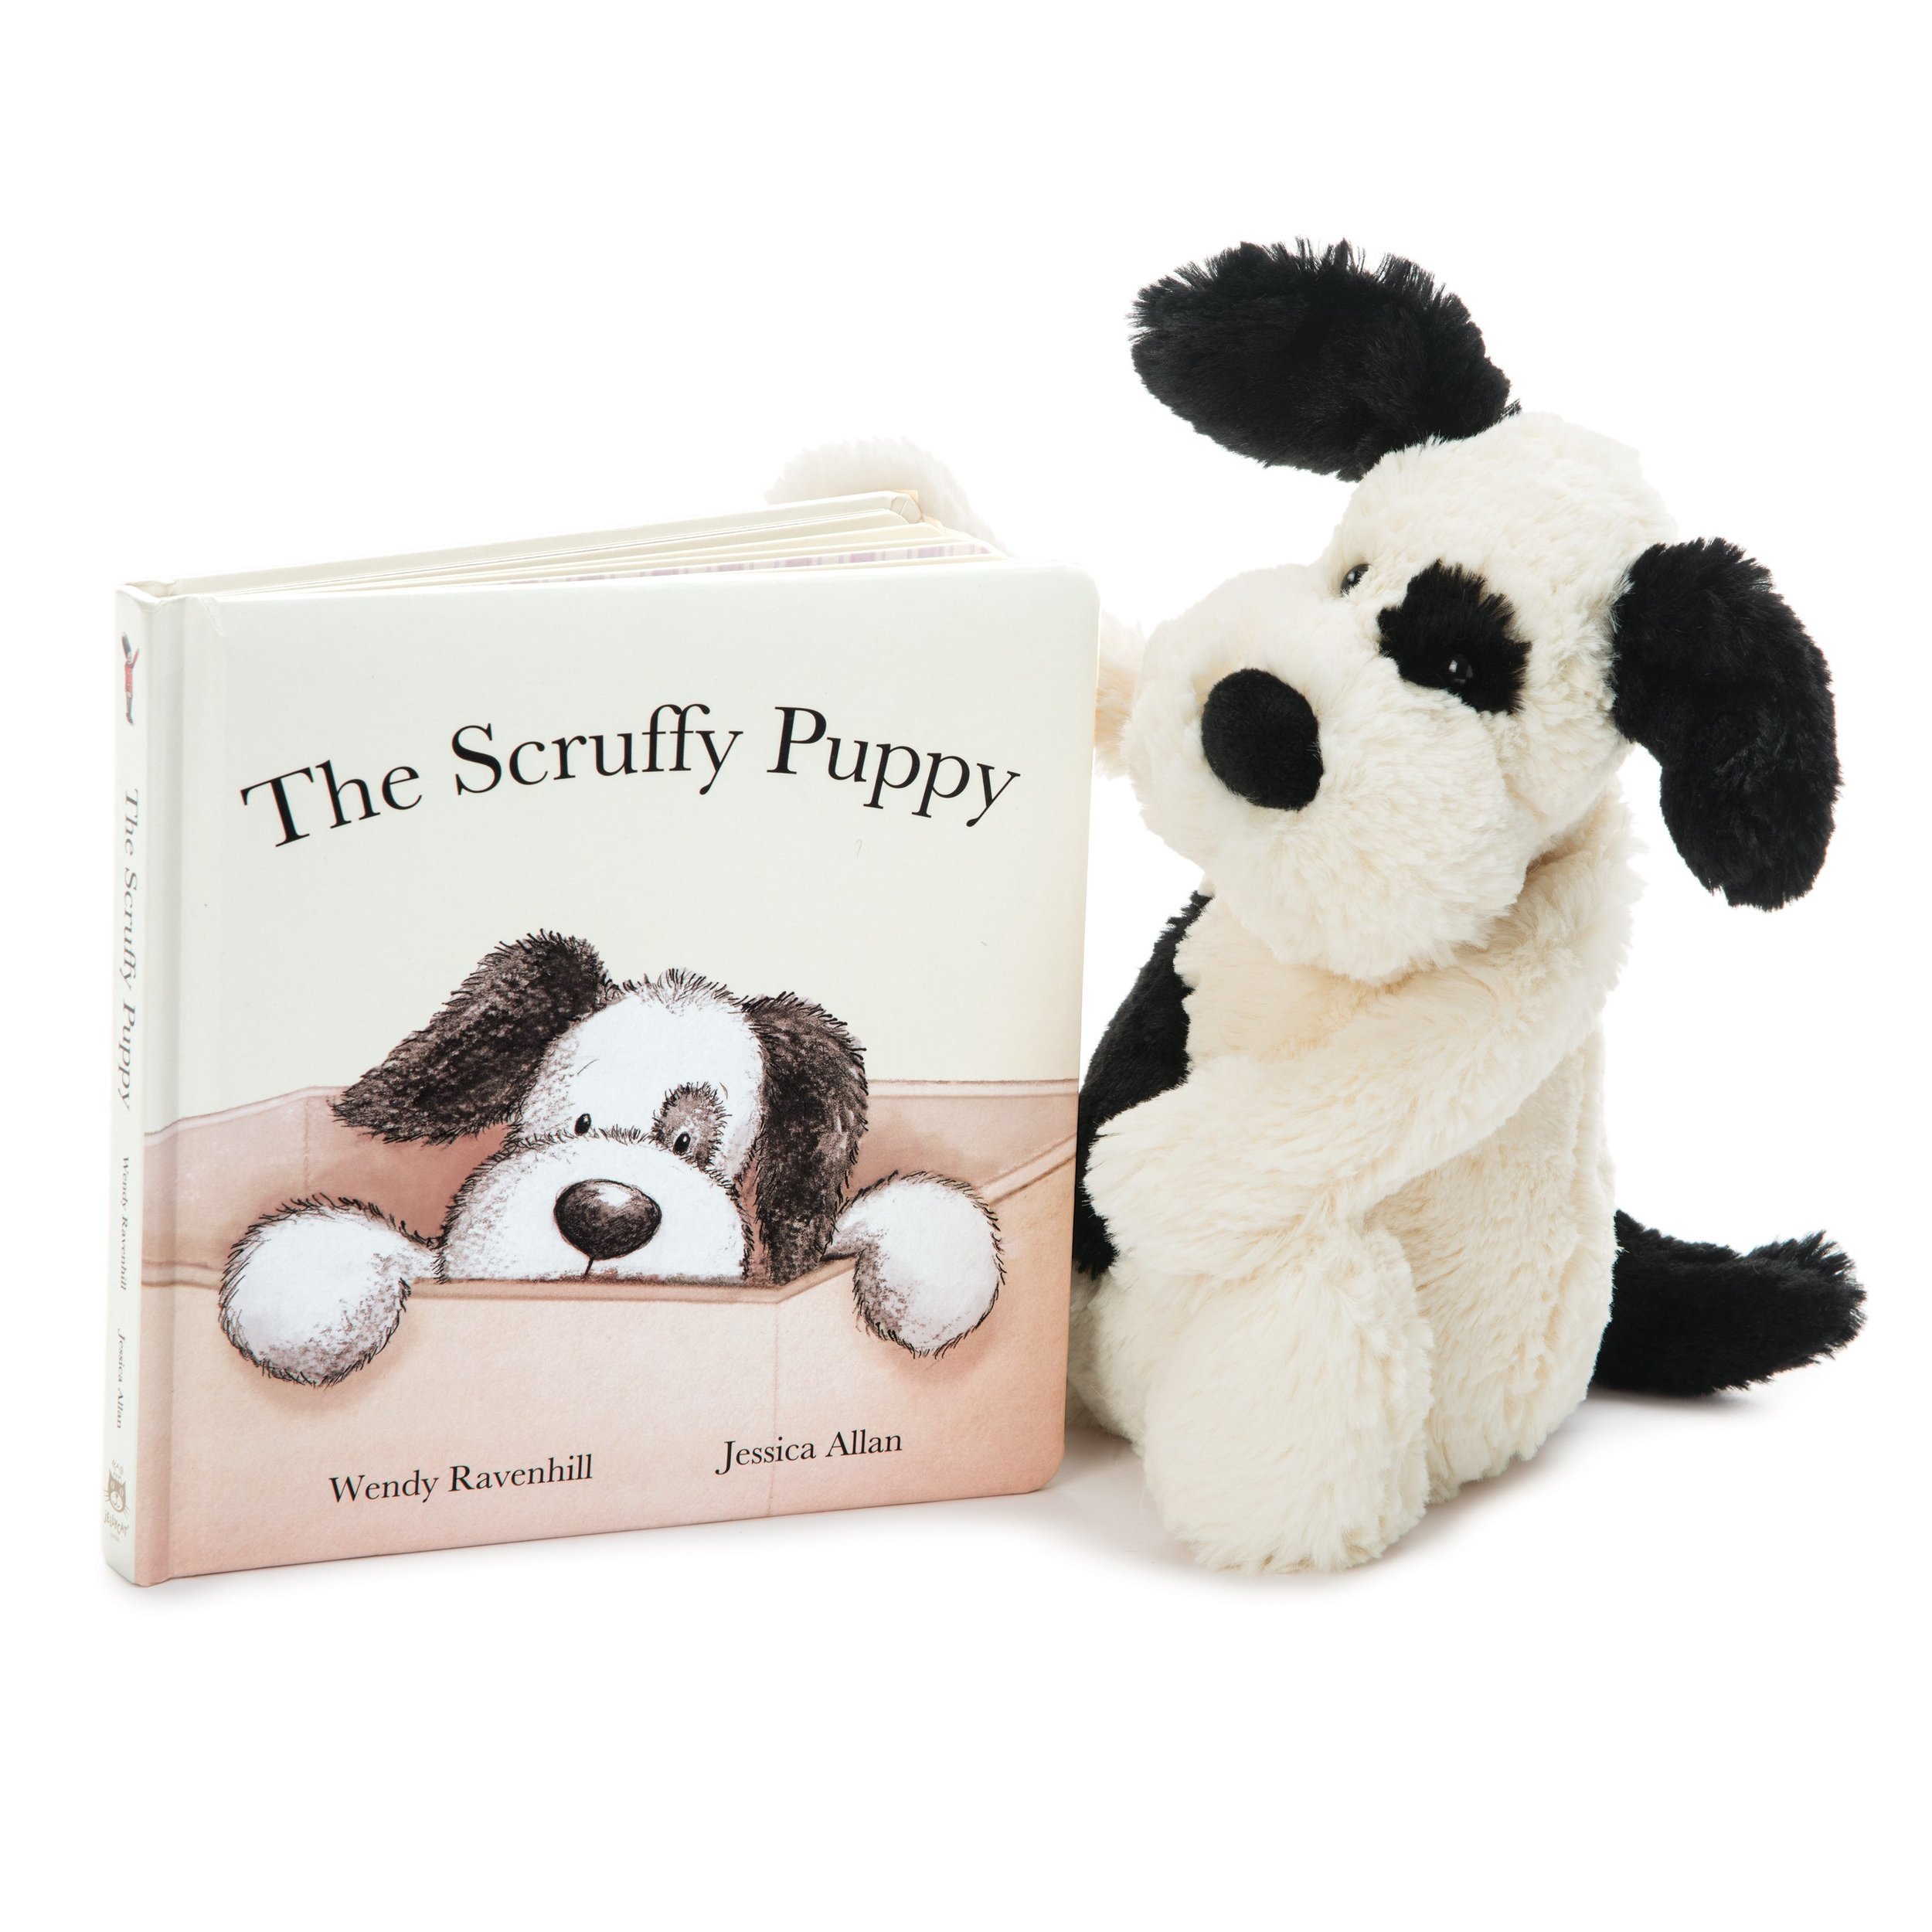 Gift Ideas for a Royal Baby - Jellycat Scruffy Puppy.jpg